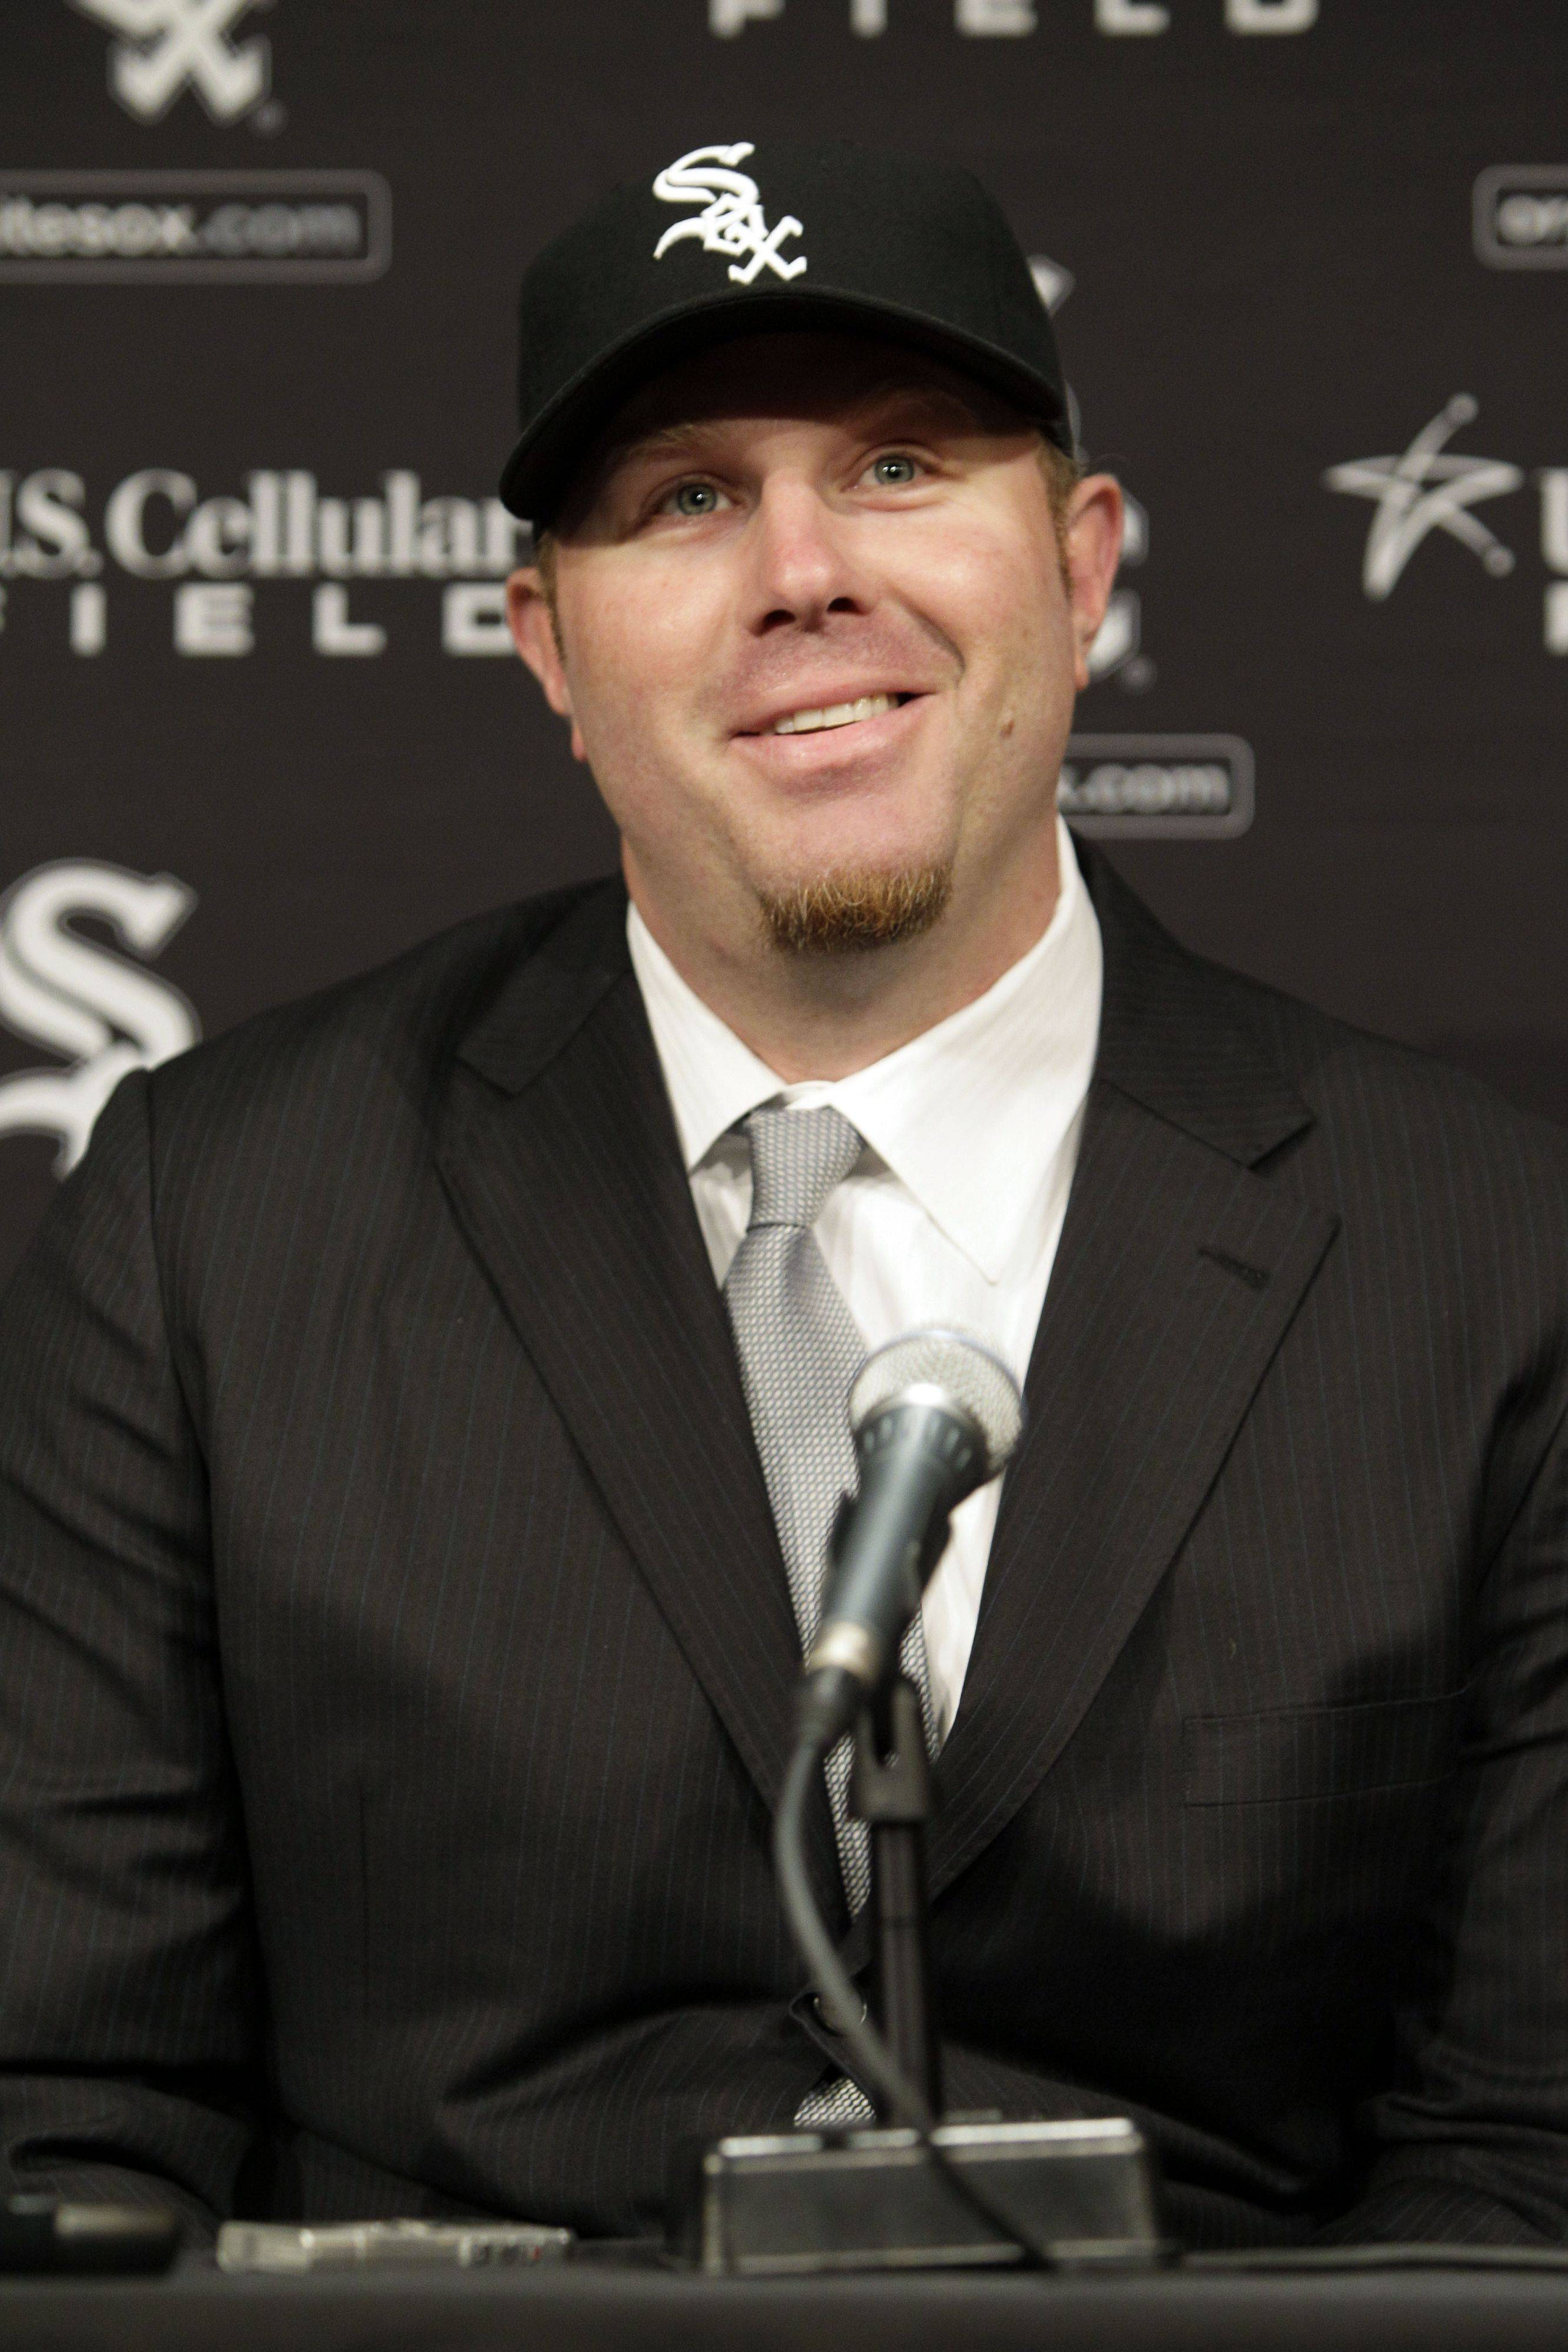 The White Sox's Adam Dunn listens to a question during a news conference in Chicago on Friday. Dunn agreed to a four-year deal worth $56 million with the White Sox.